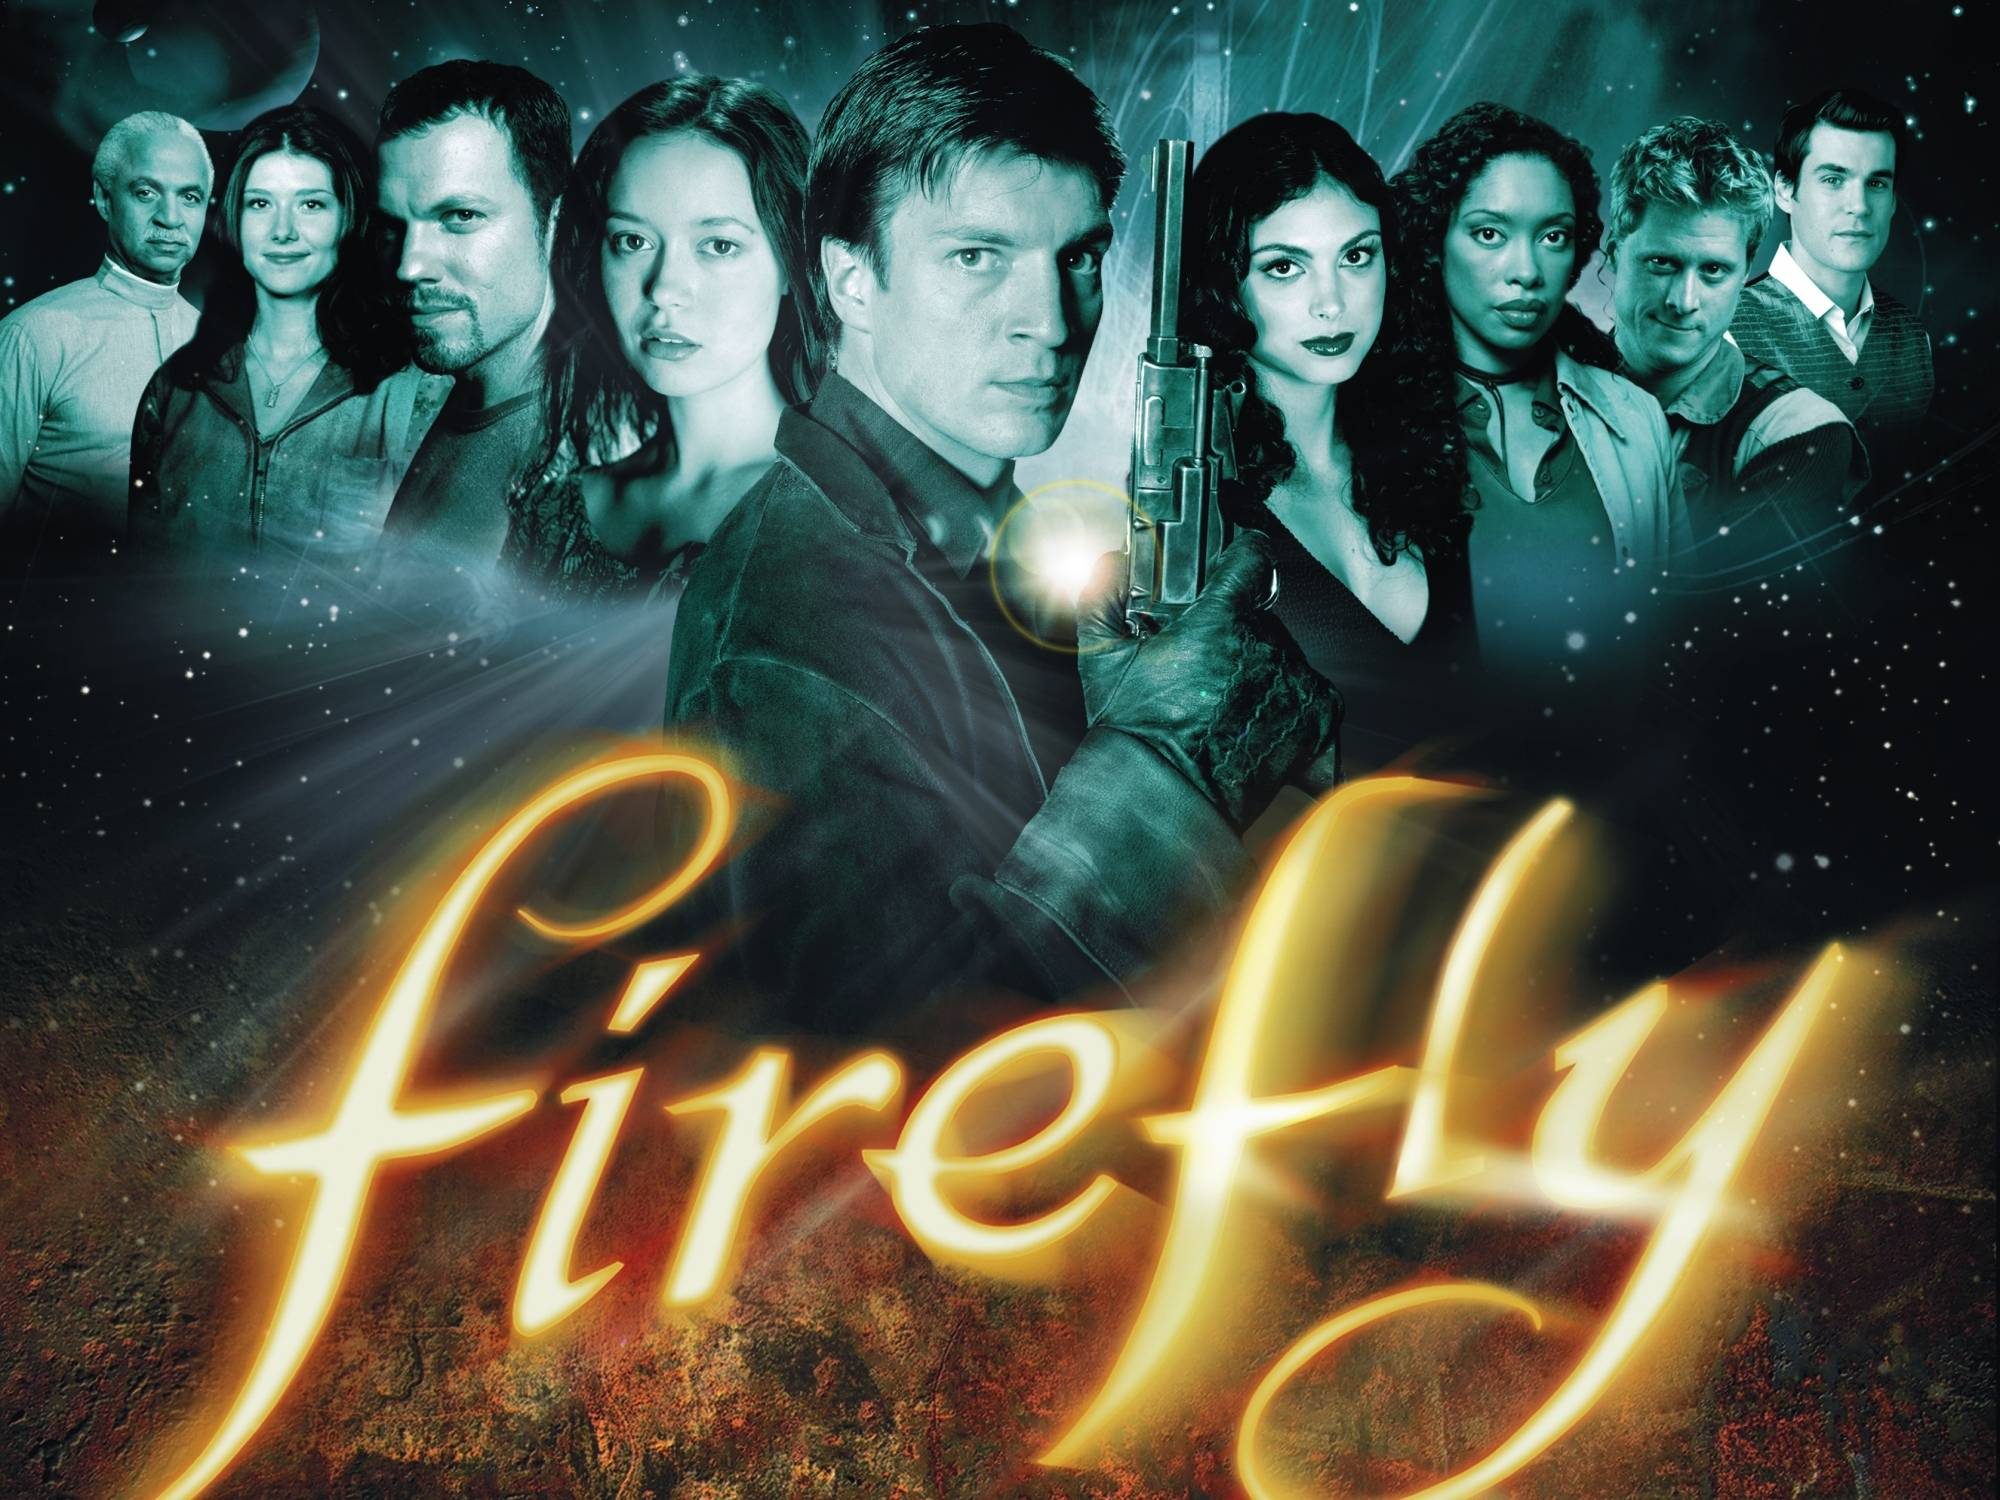 Firefly (Wallpaper) - Science fiction Wallpaper